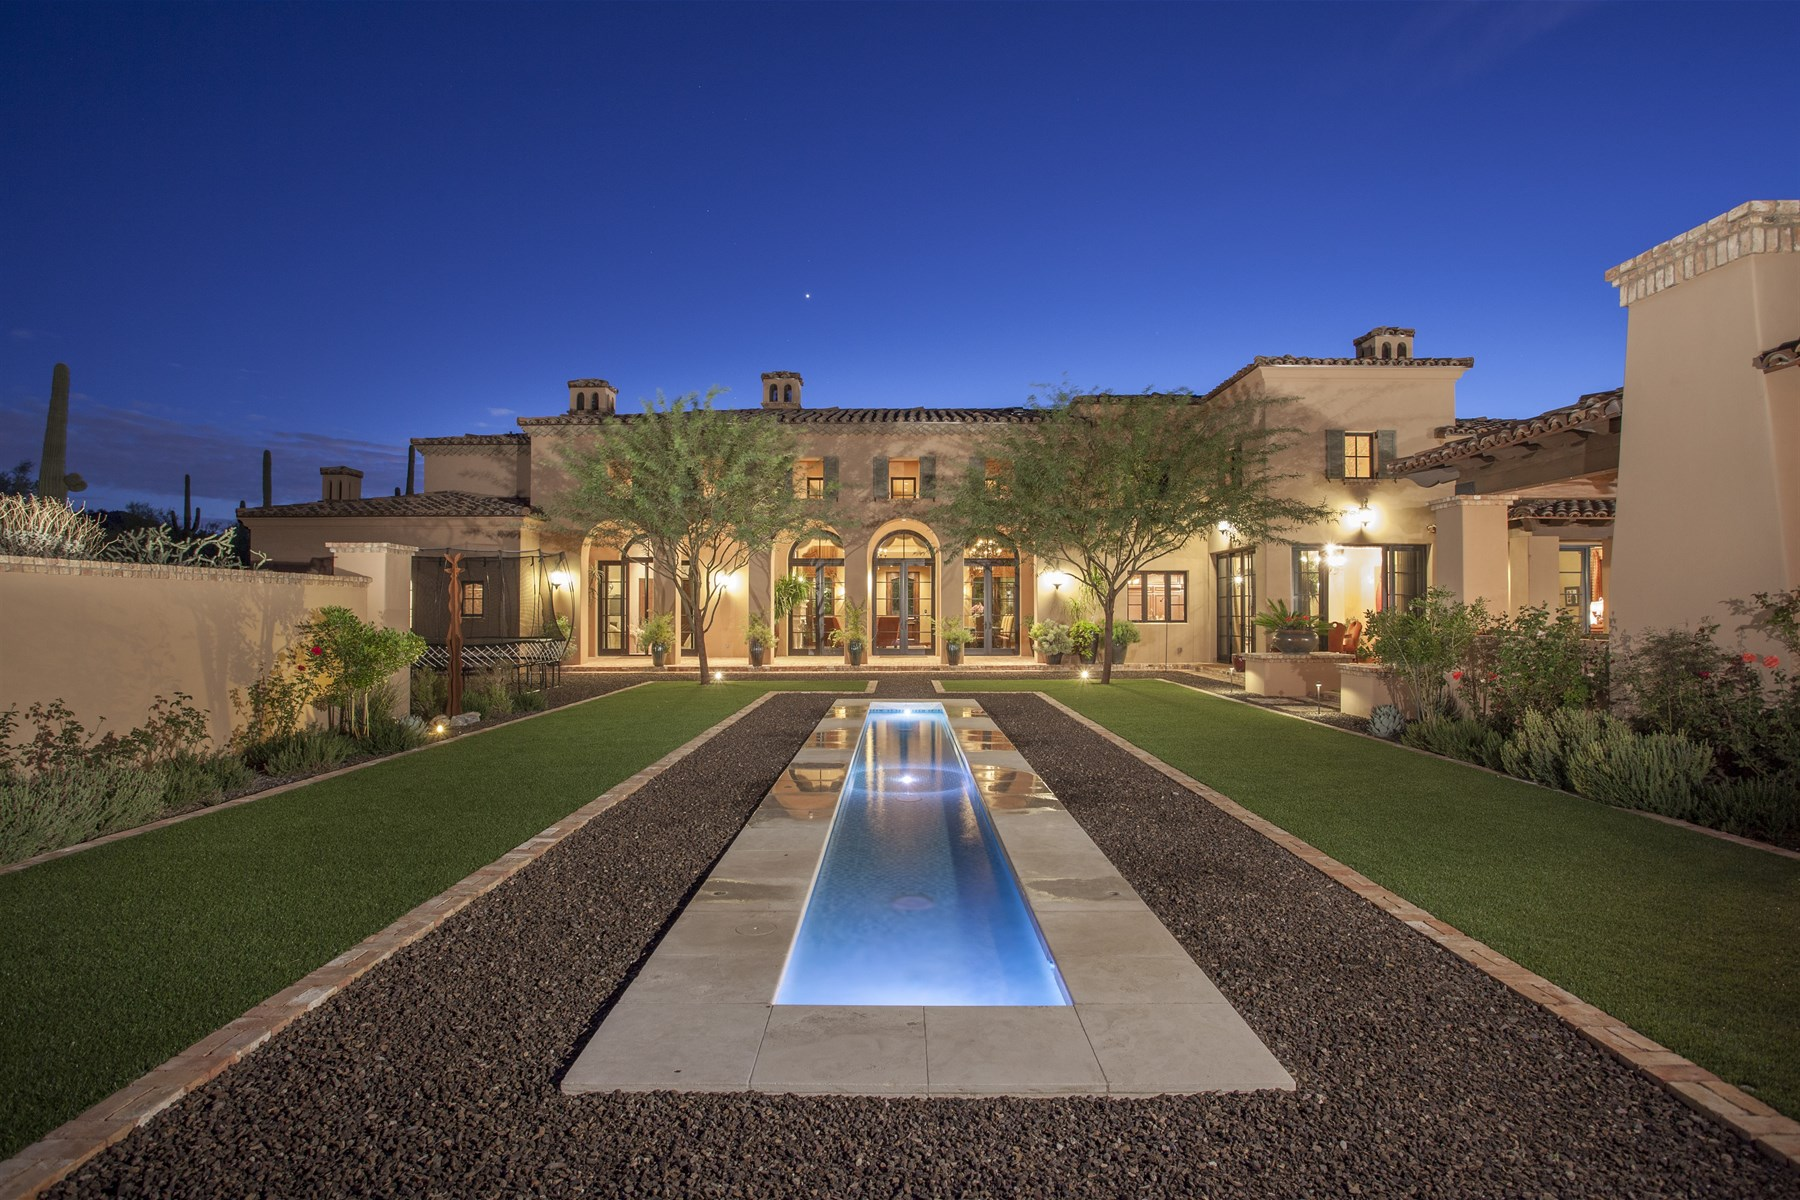 Maison unifamiliale pour l Vente à Beautifully Crafted Luxury Estate in Guard Gated Silverleaf's Upper Canyon 11038 E Saguaro Canyon Trail #1531 Scottsdale, Arizona 85255 États-Unis